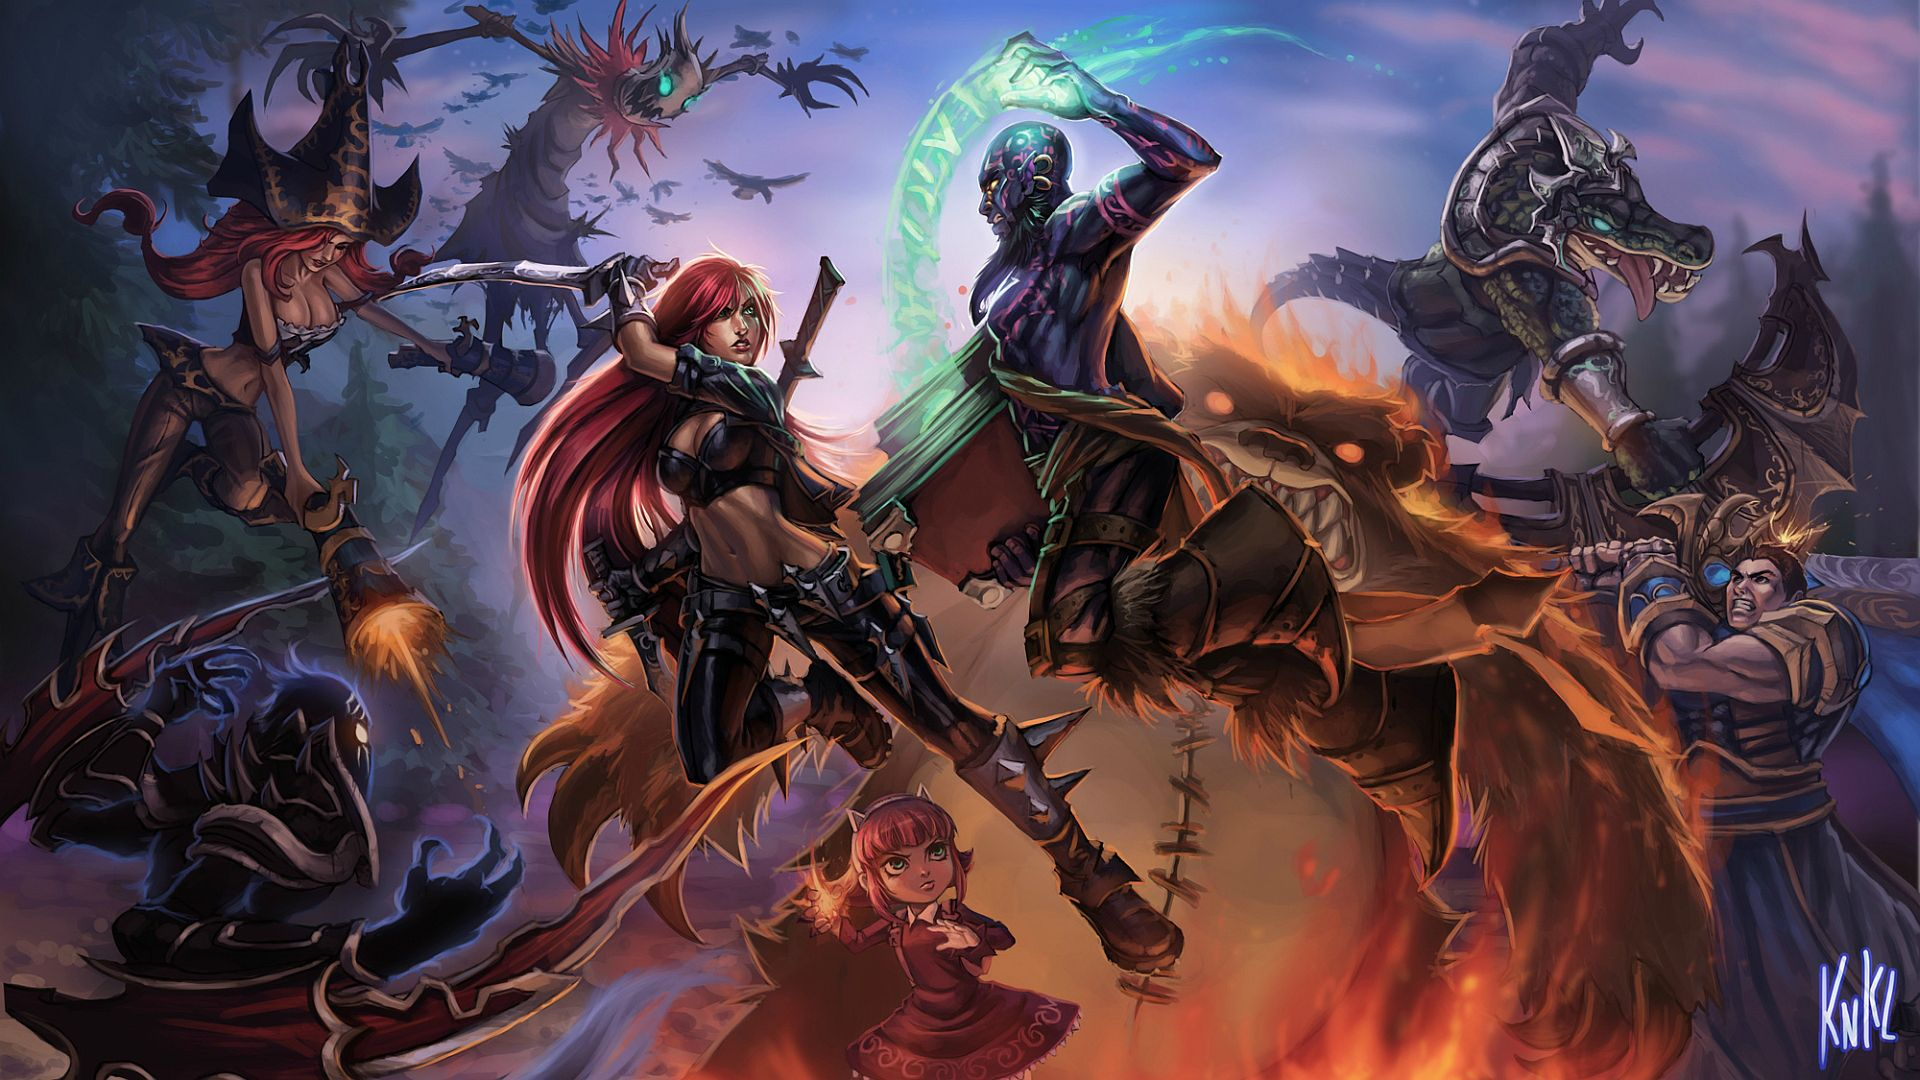 Katarina, Nocturne, Fiddlesticks, Miss Fortune, Renekton, Annie and Tibbers Vs Ryze and Garen